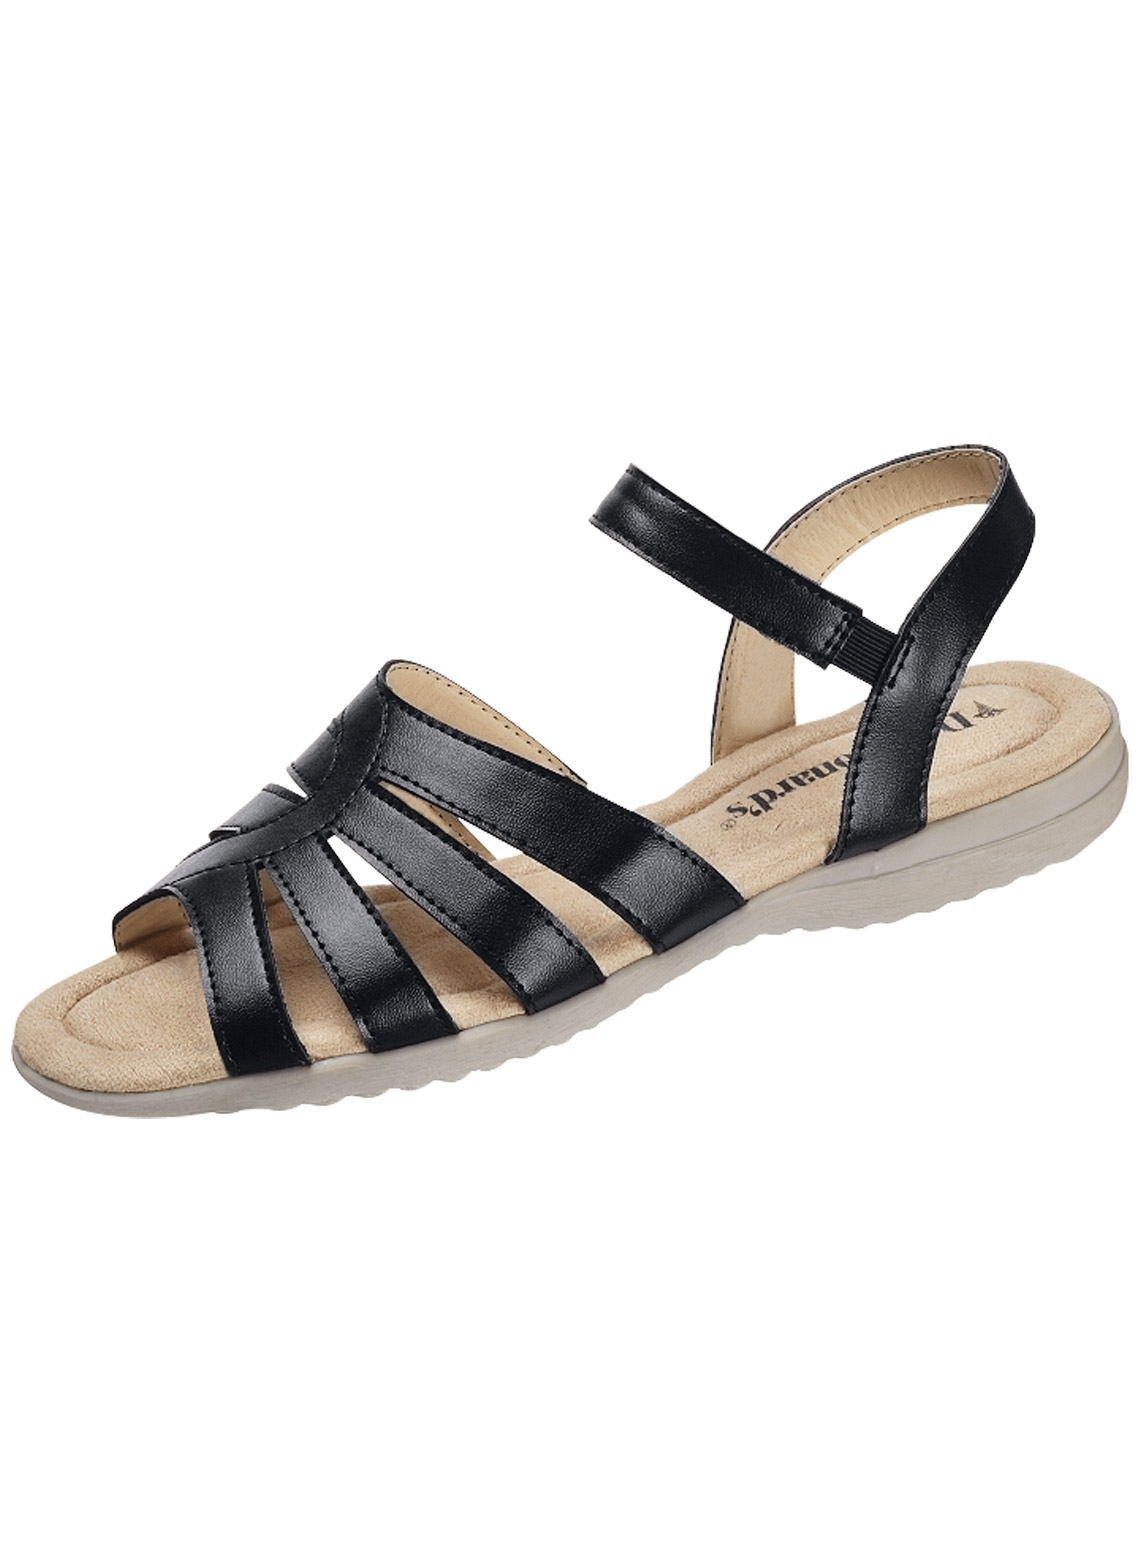 womens sandals dr. leonardu0027s womenu0027s strappy sandal. loading zoom medkuqh